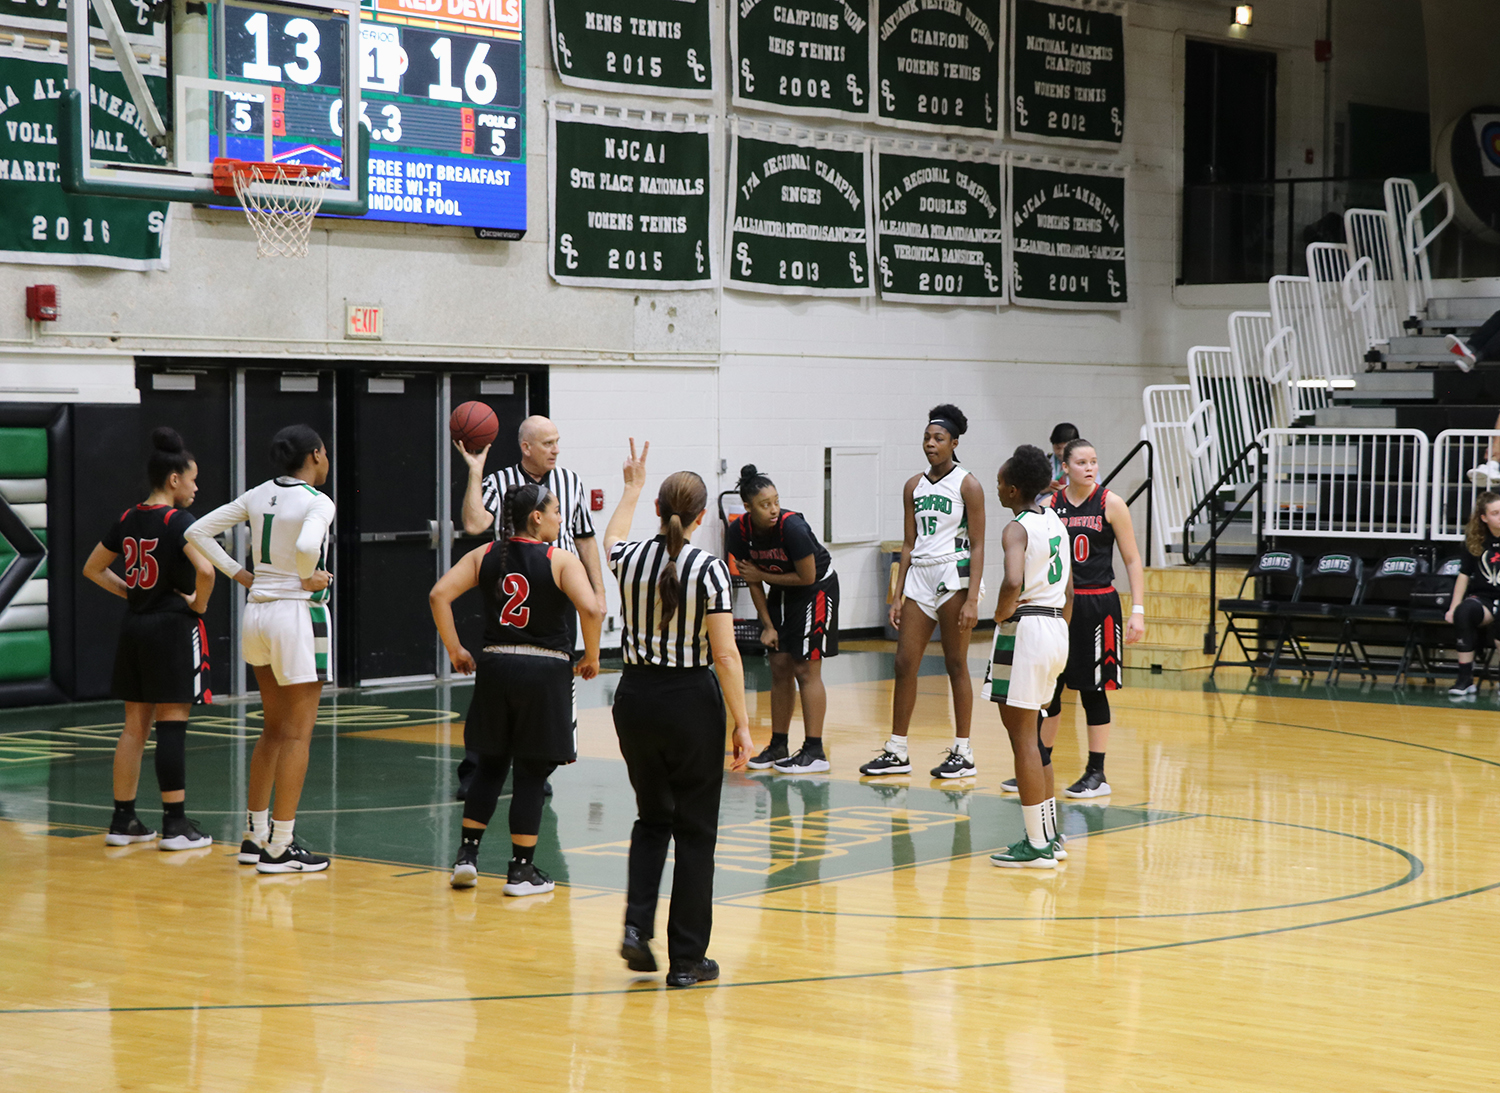 Aquila Mucubaquire lines up for the free throw. The sophomore from Mozambique shoots 75% from the line.